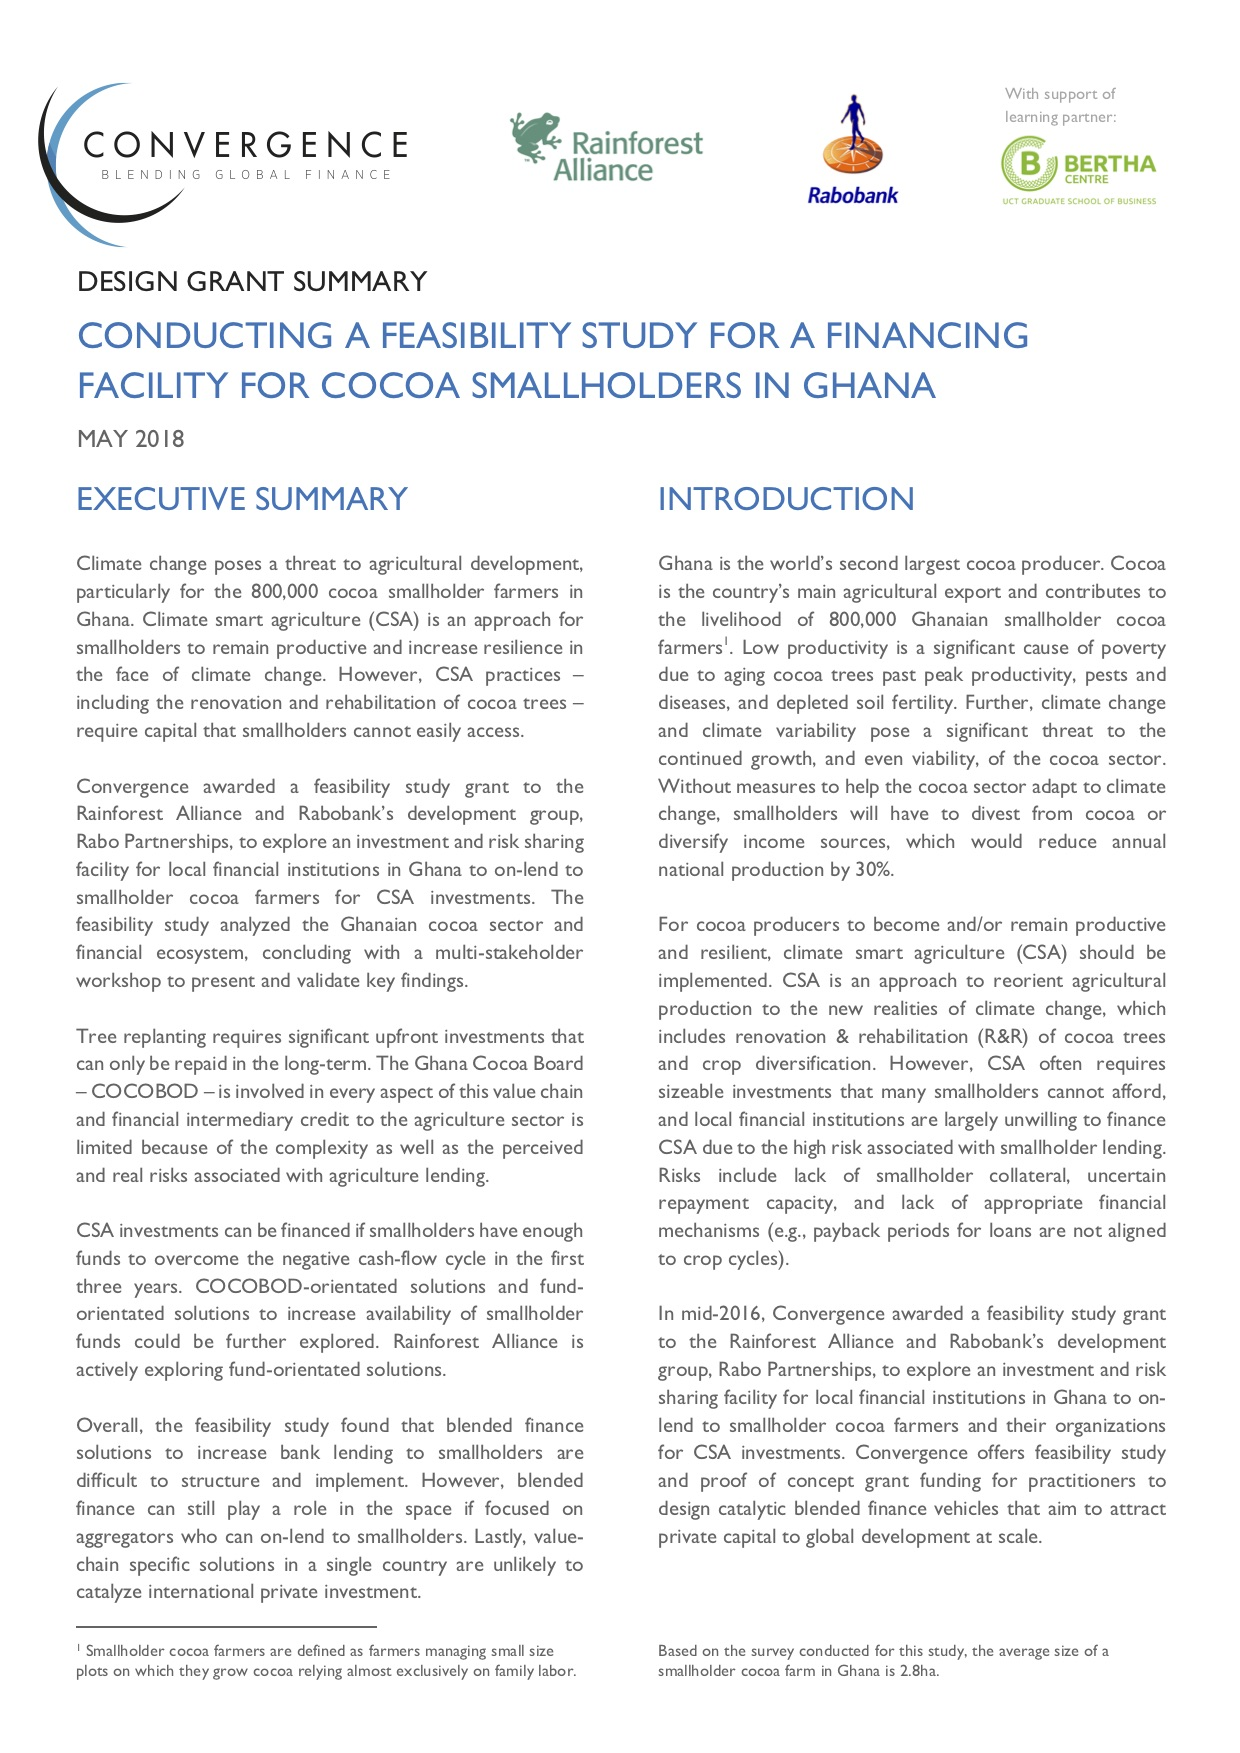 Conducting a Feasibility Study for a Financing Facility for Cocoa Smallholders in Ghana Design Grant Summary